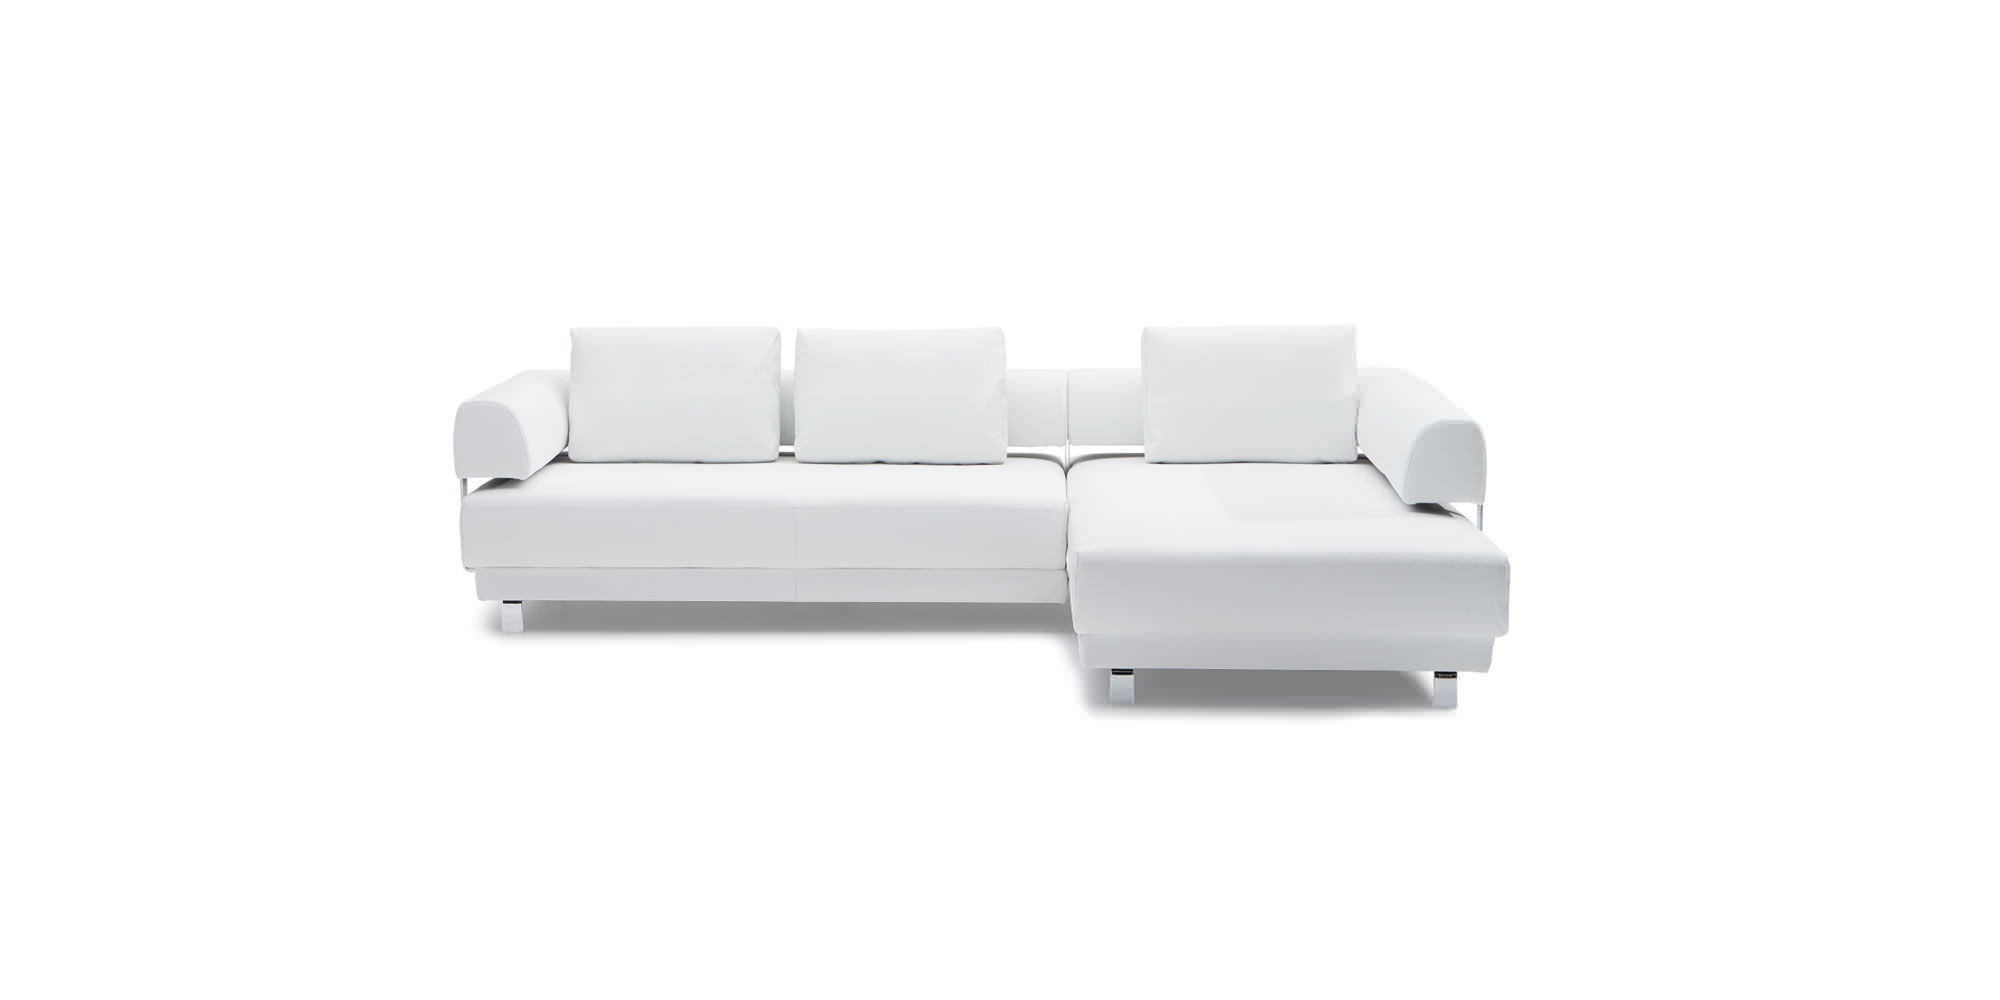 KG · Corner Sofa / Modular / Contemporary / Fabric FACE Ewald Schillig GmbH  U0026 Co.